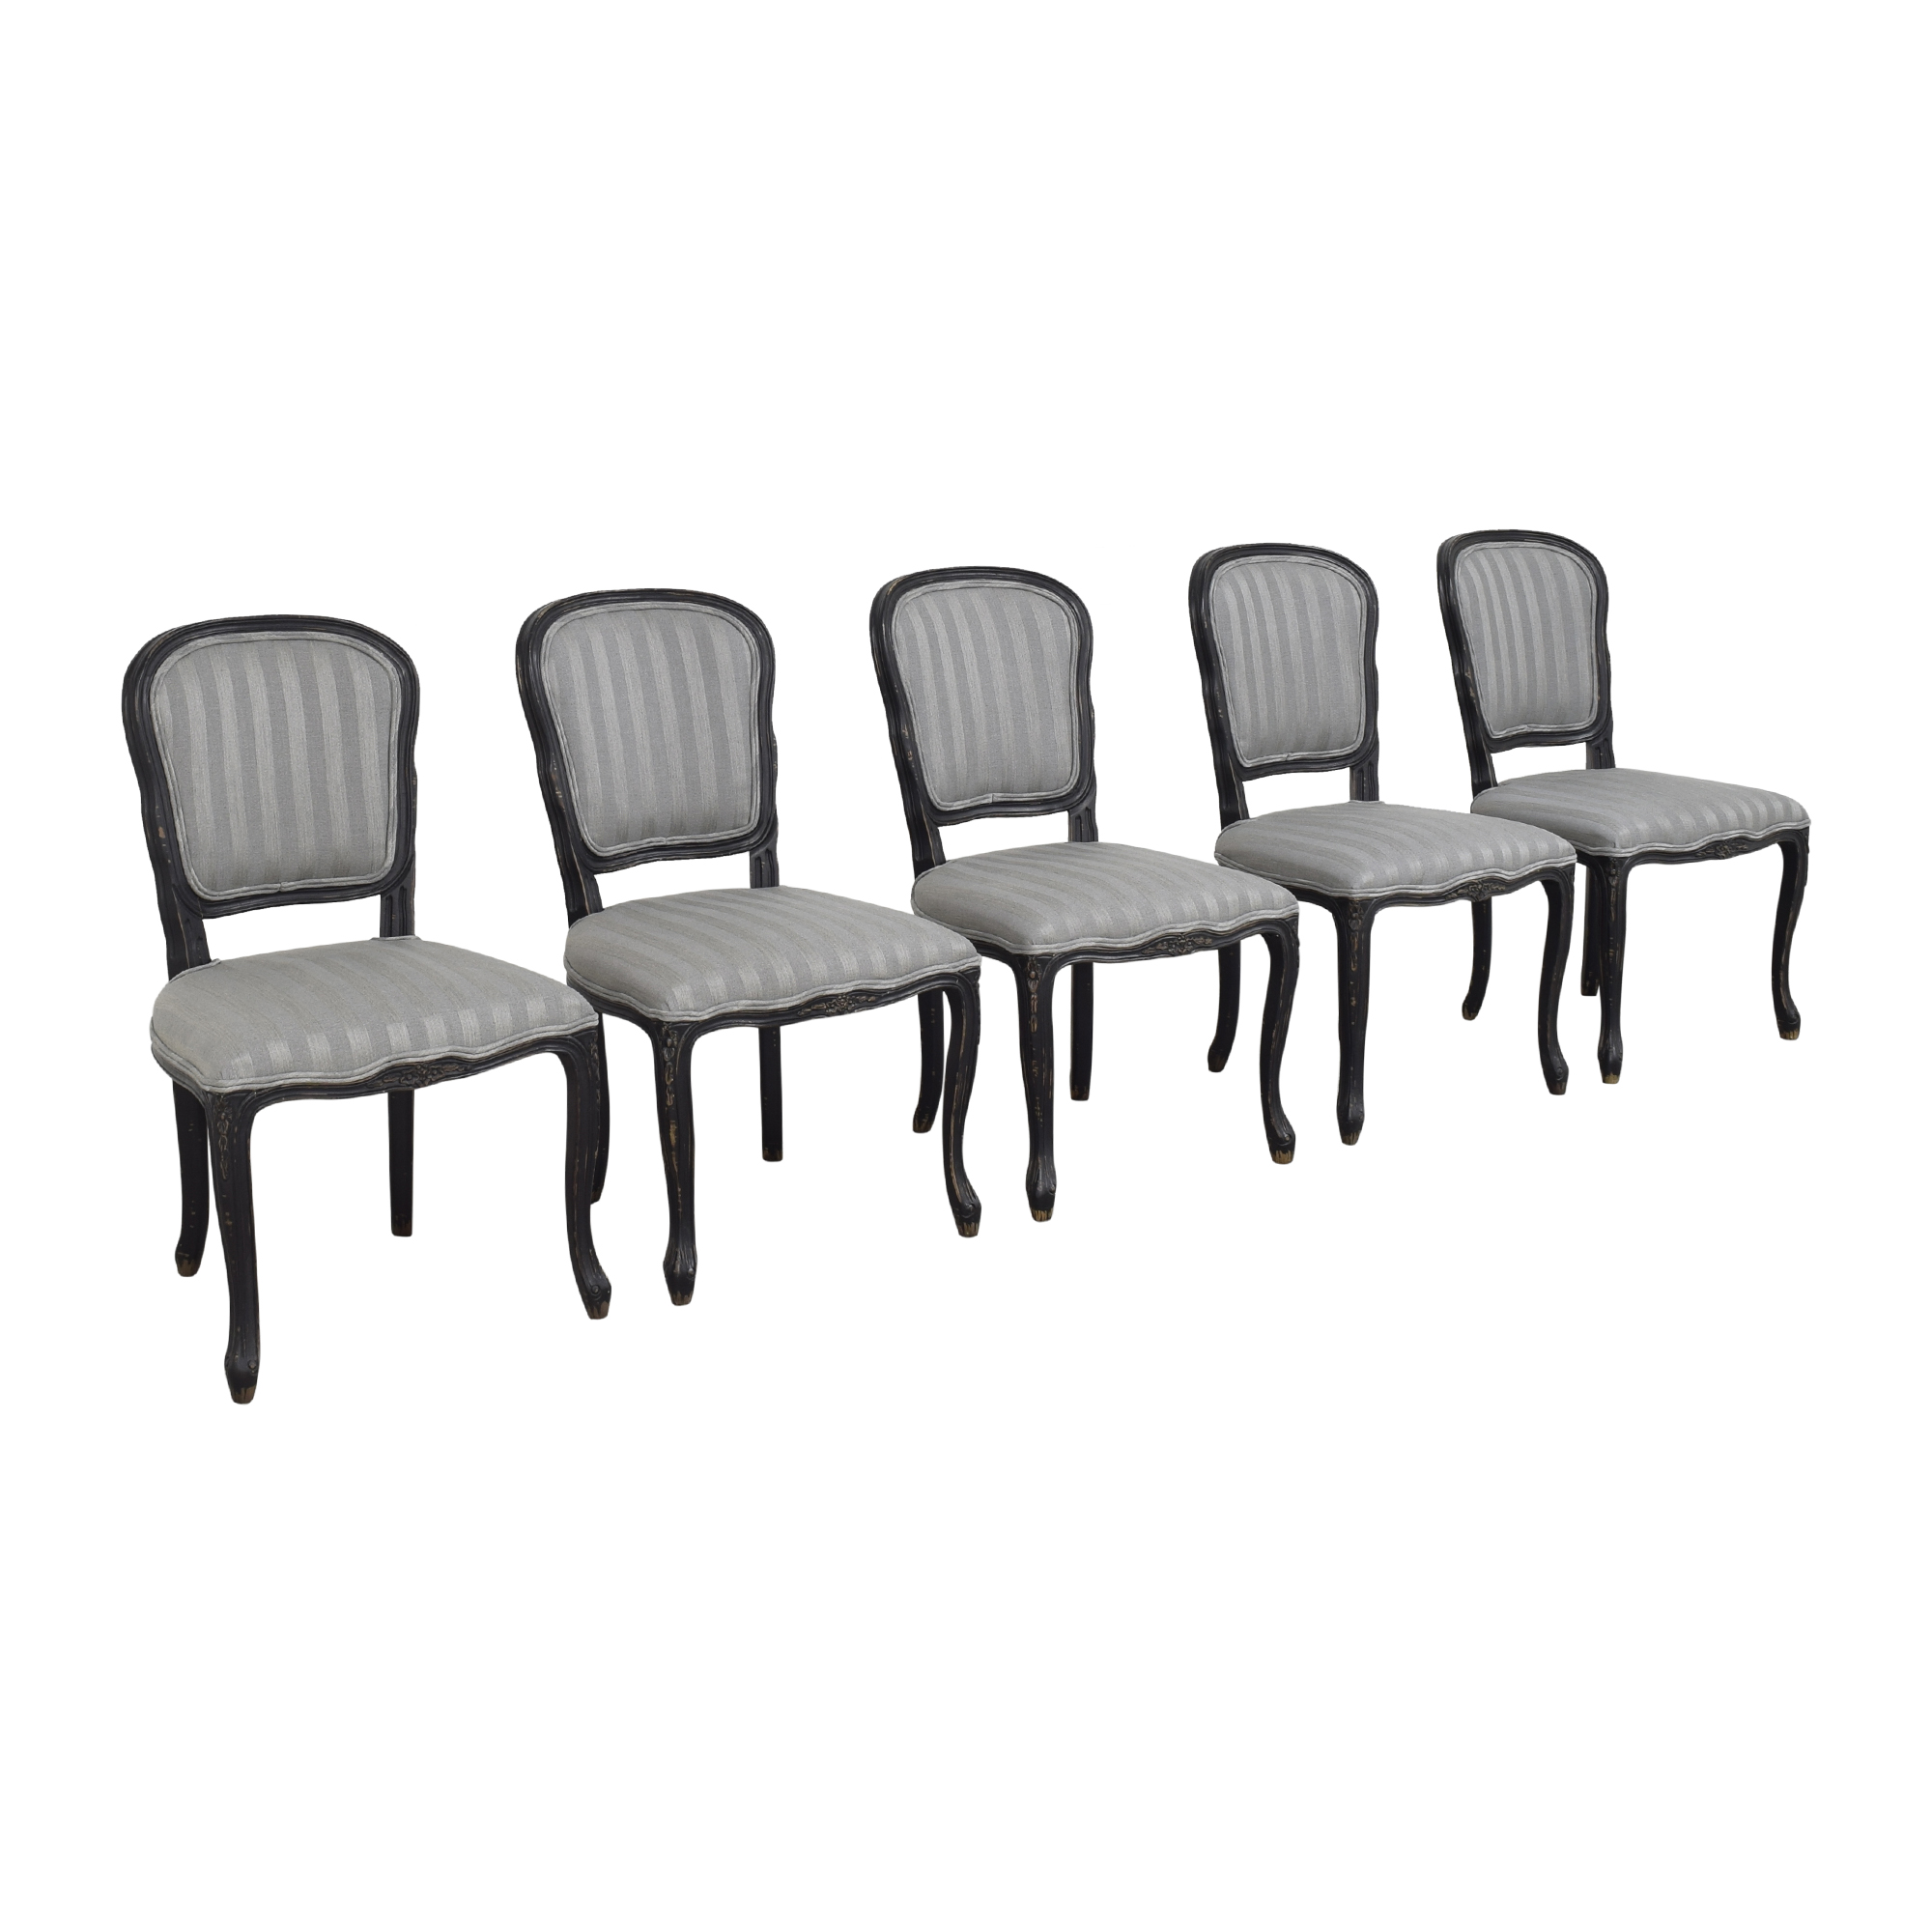 Four Hands Four Hands Orleans Dining Chairs discount